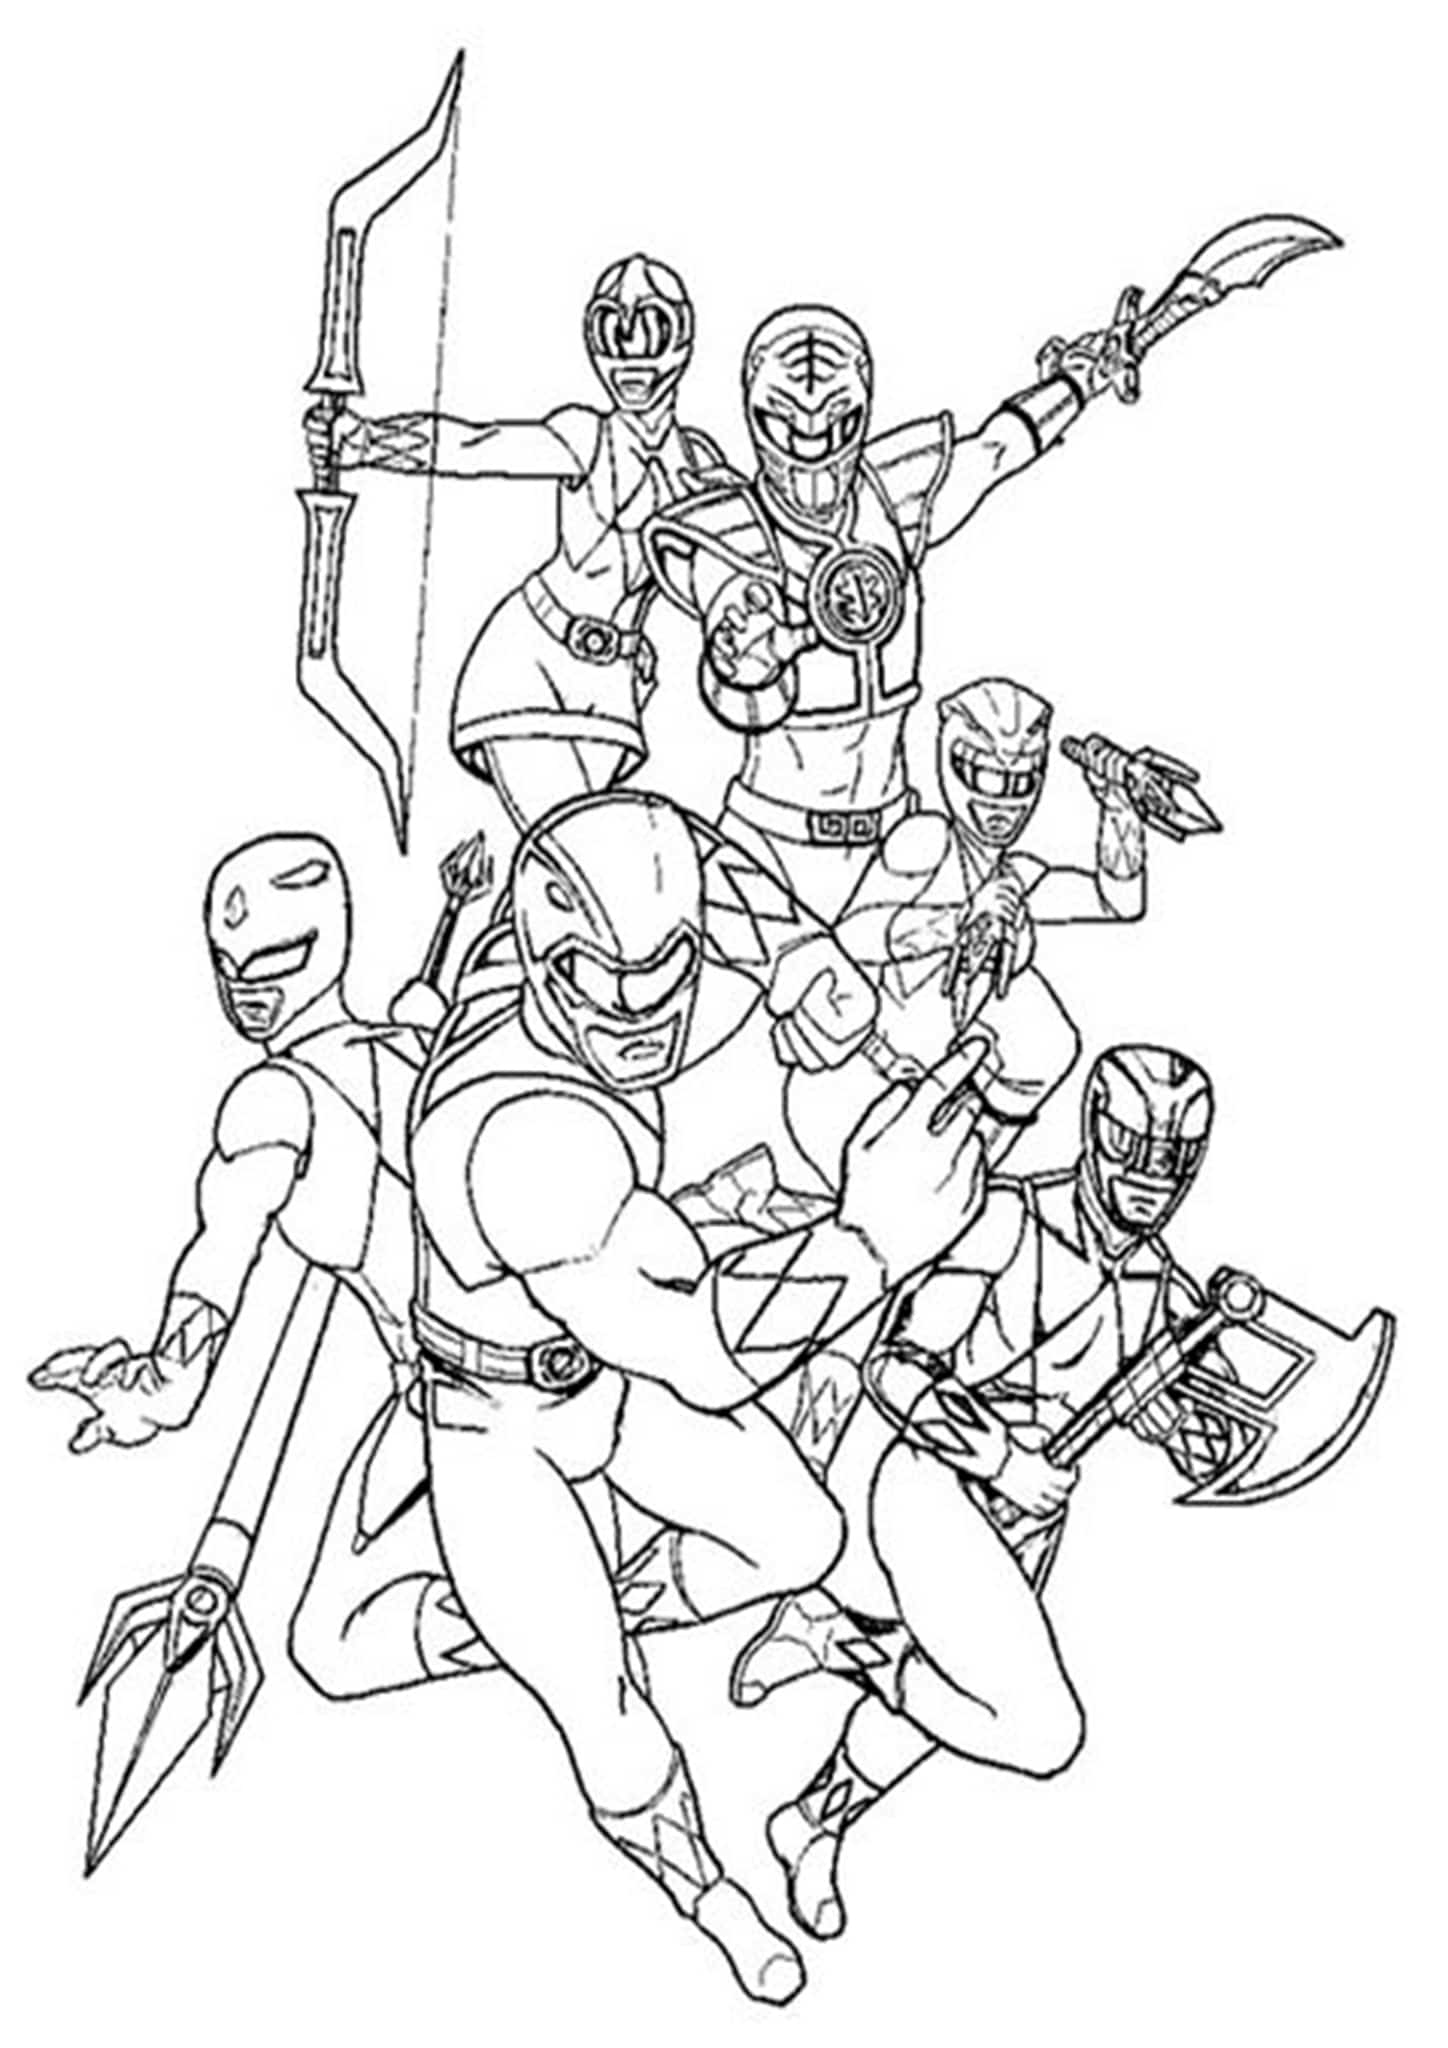 power rangers pictures to color free easy to print power rangers coloring pages tulamama rangers color power pictures to